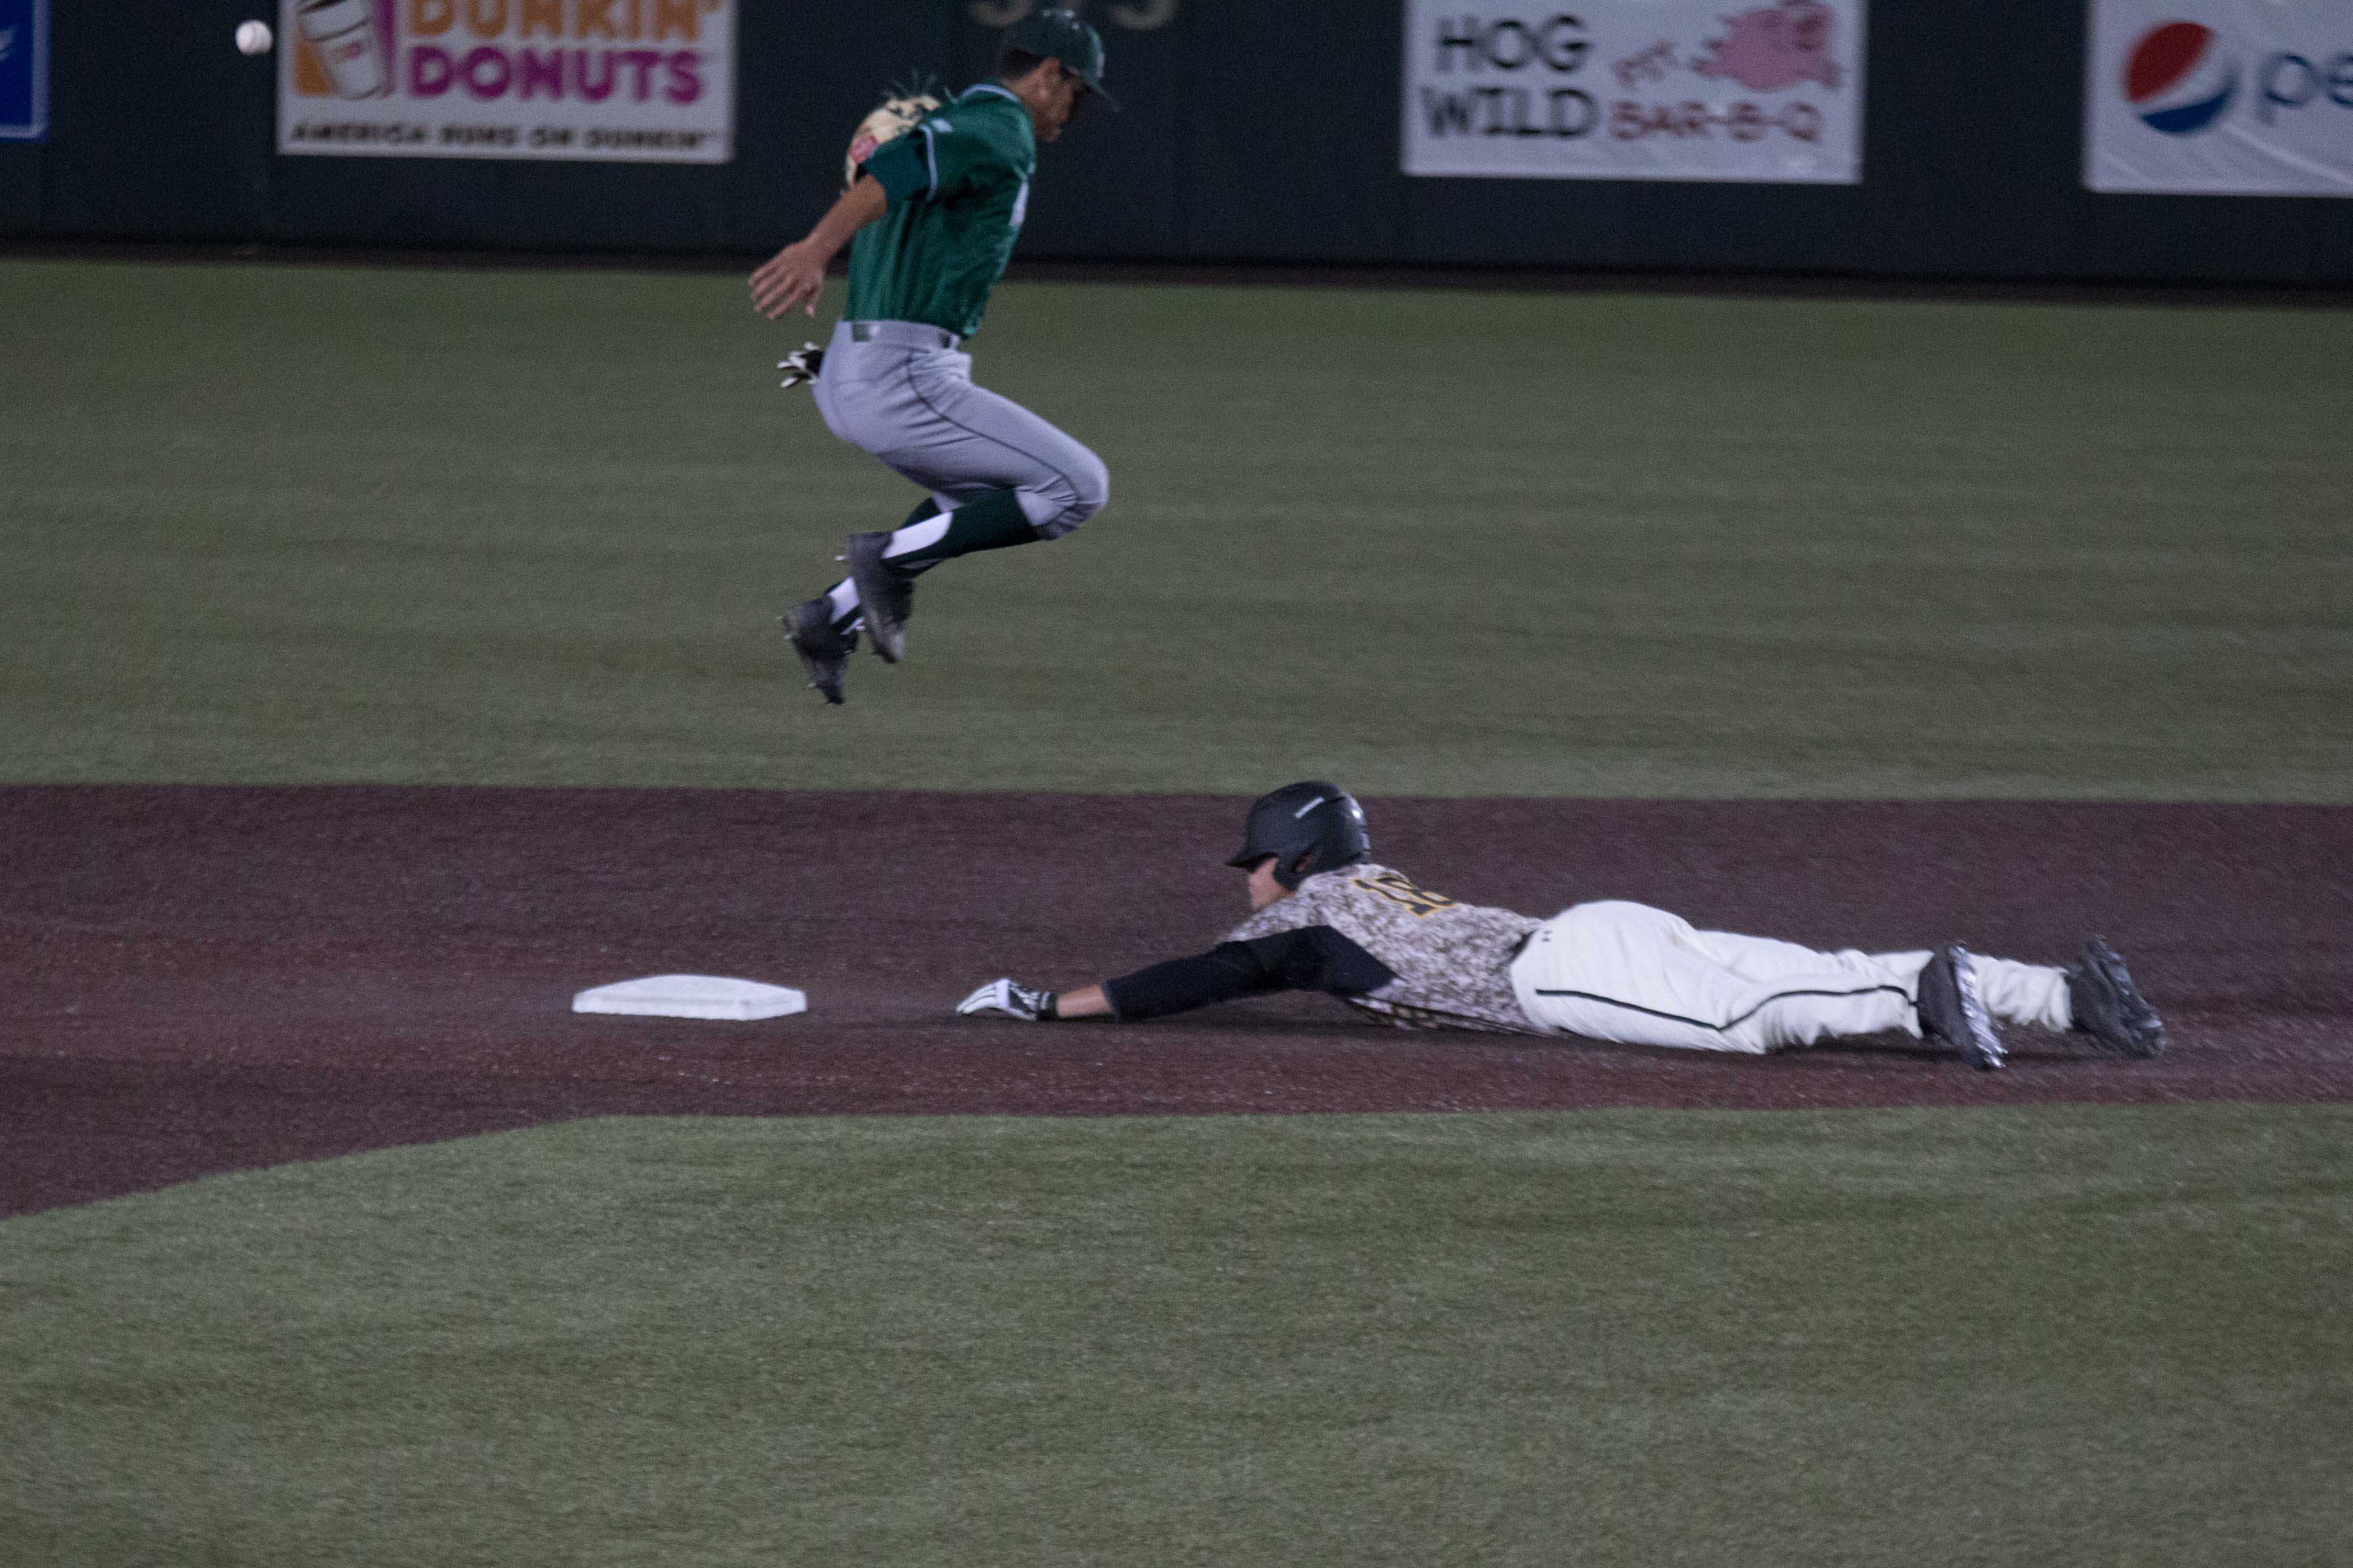 Sophomore Alec Bohm steals second base during the game against Sacramento.